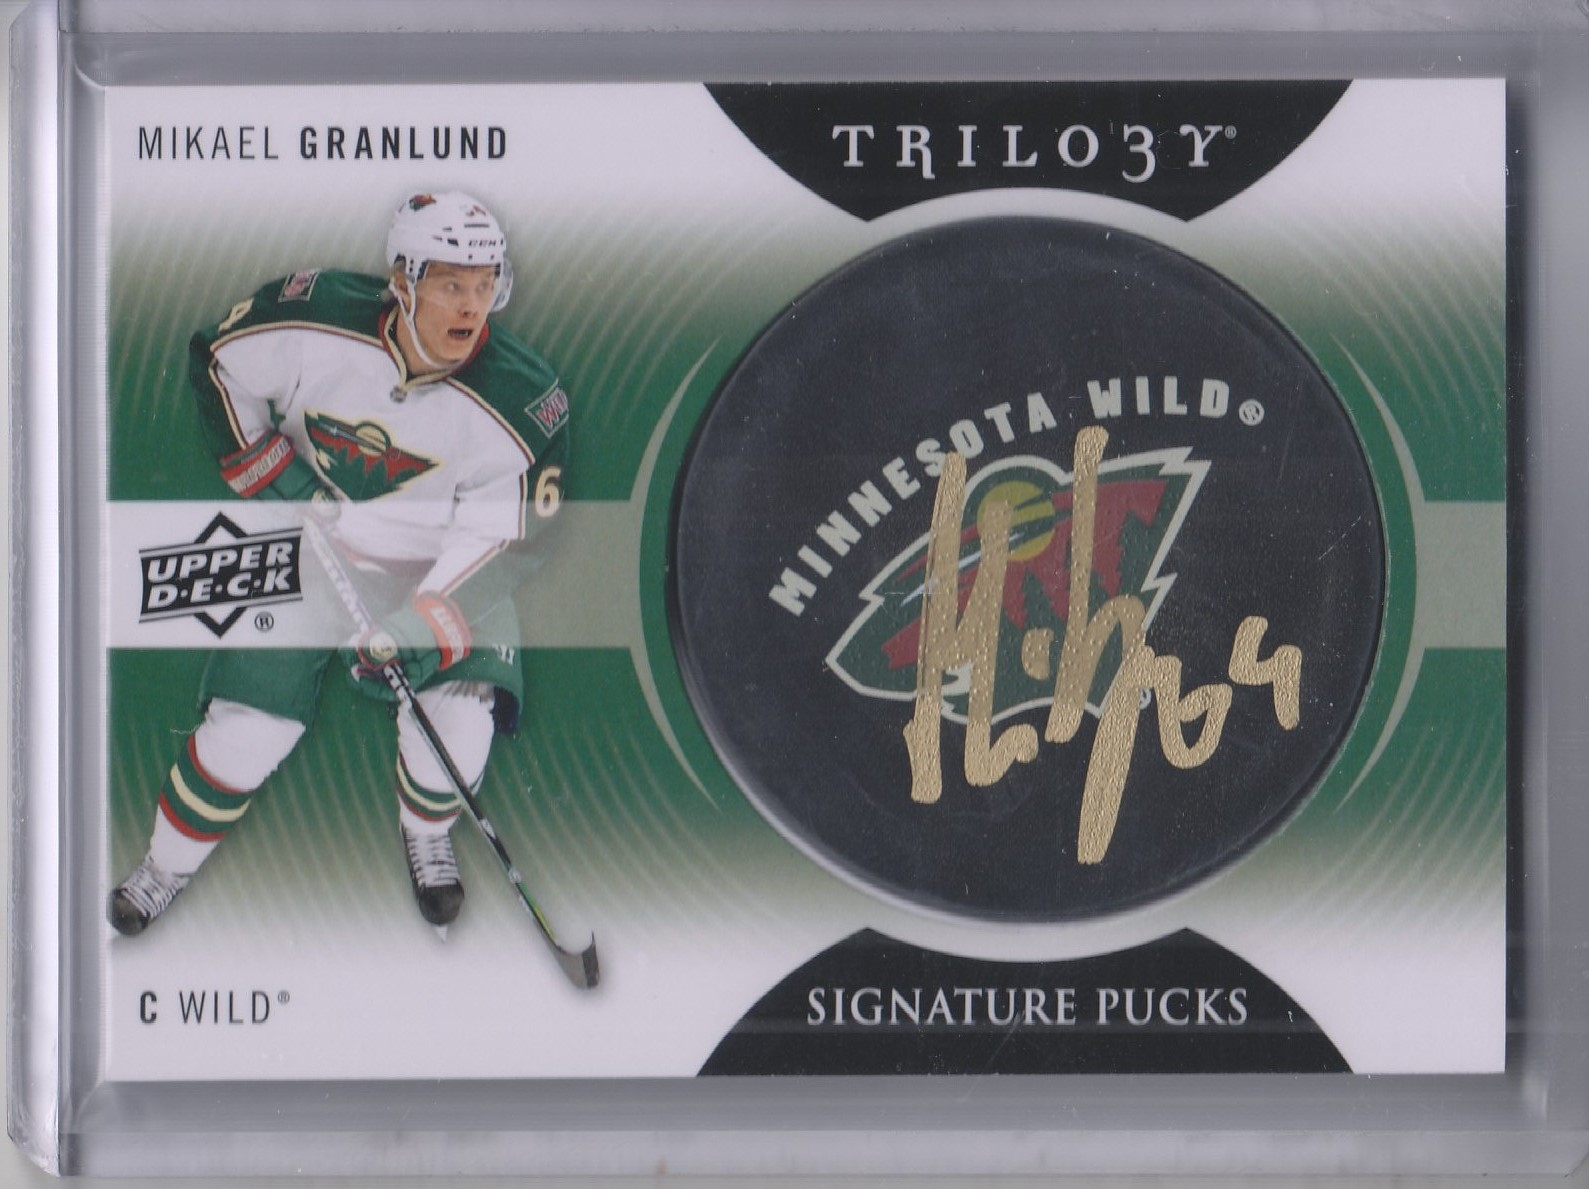 2013-14 Upper Deck Trilogy Signature Pucks #SPGR Mikael Granlund E